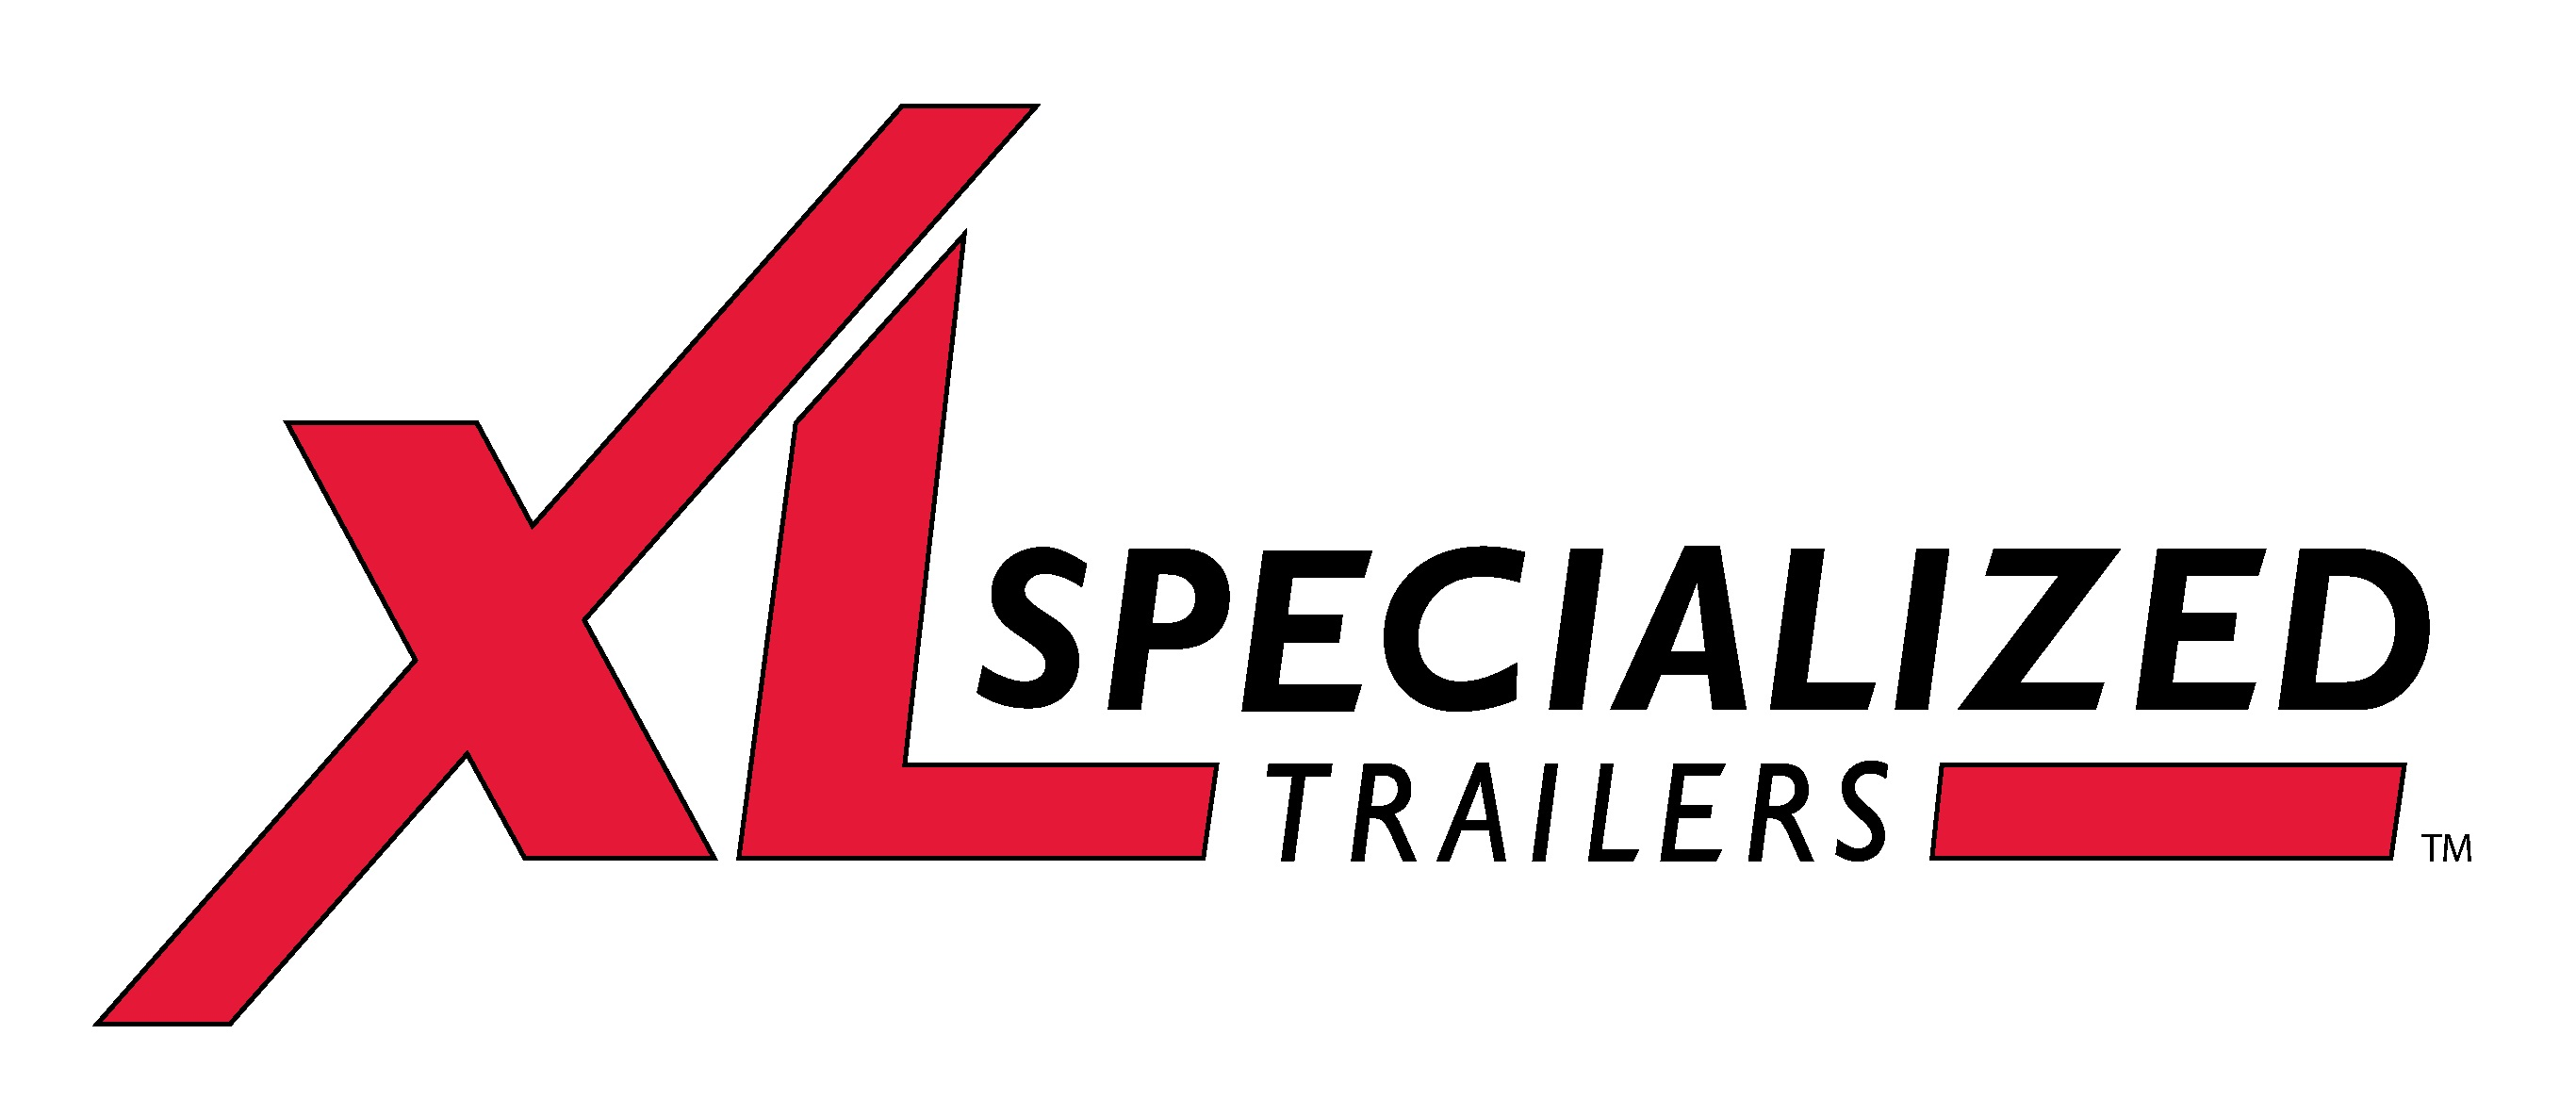 XLSpecialized Trailers